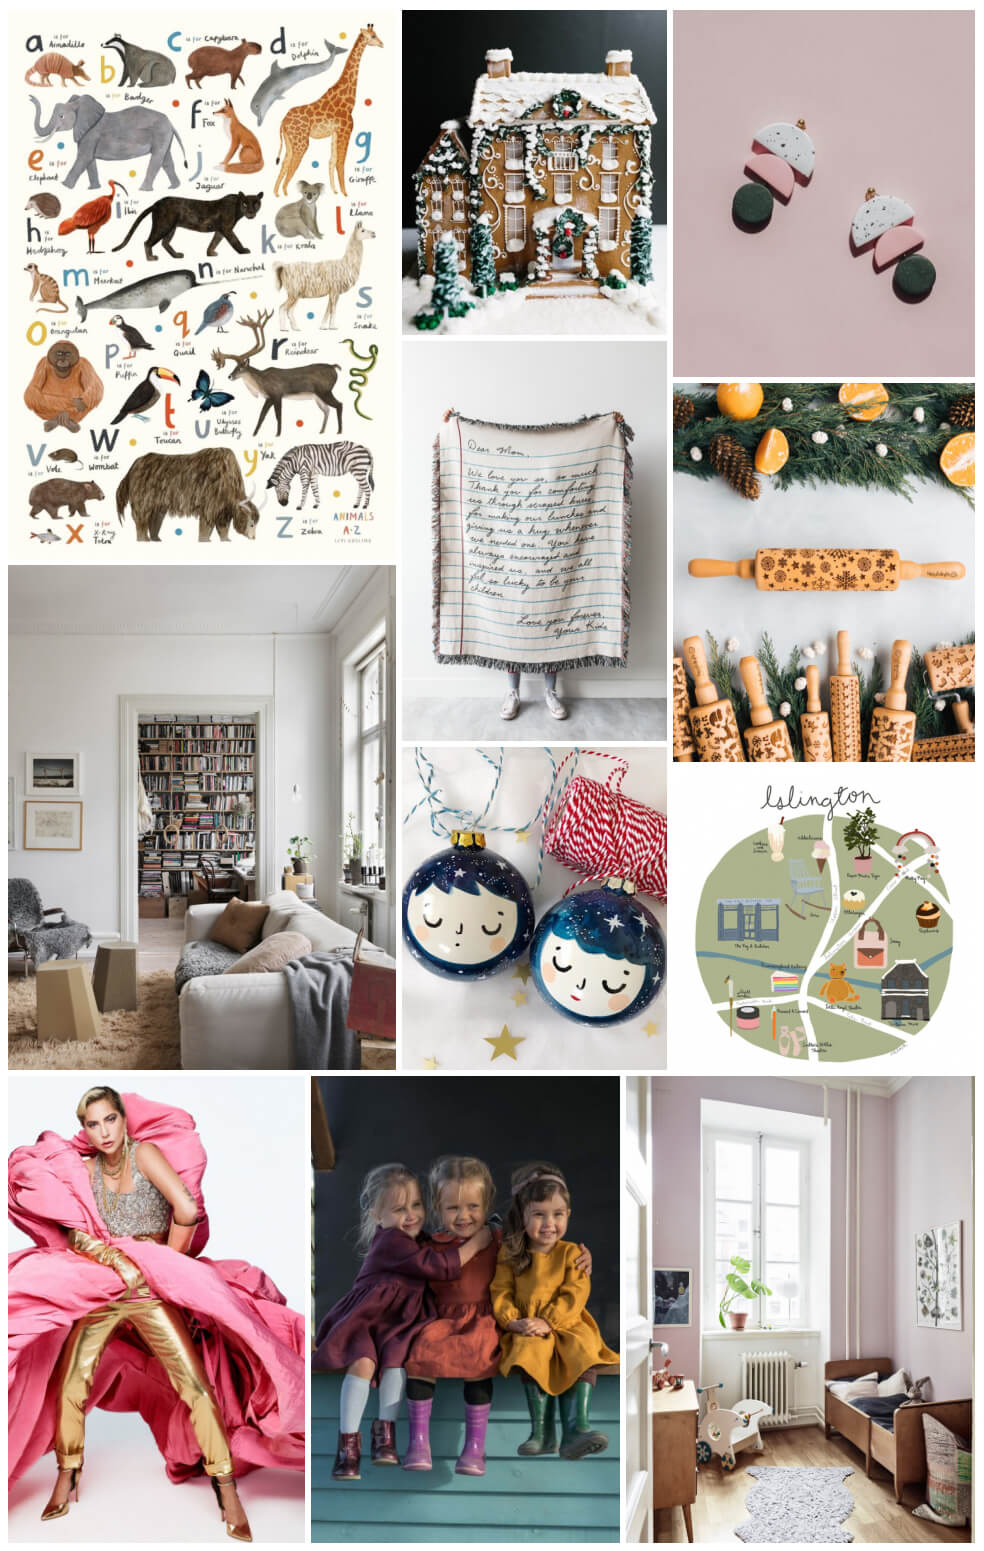 21 delightful things for your December!